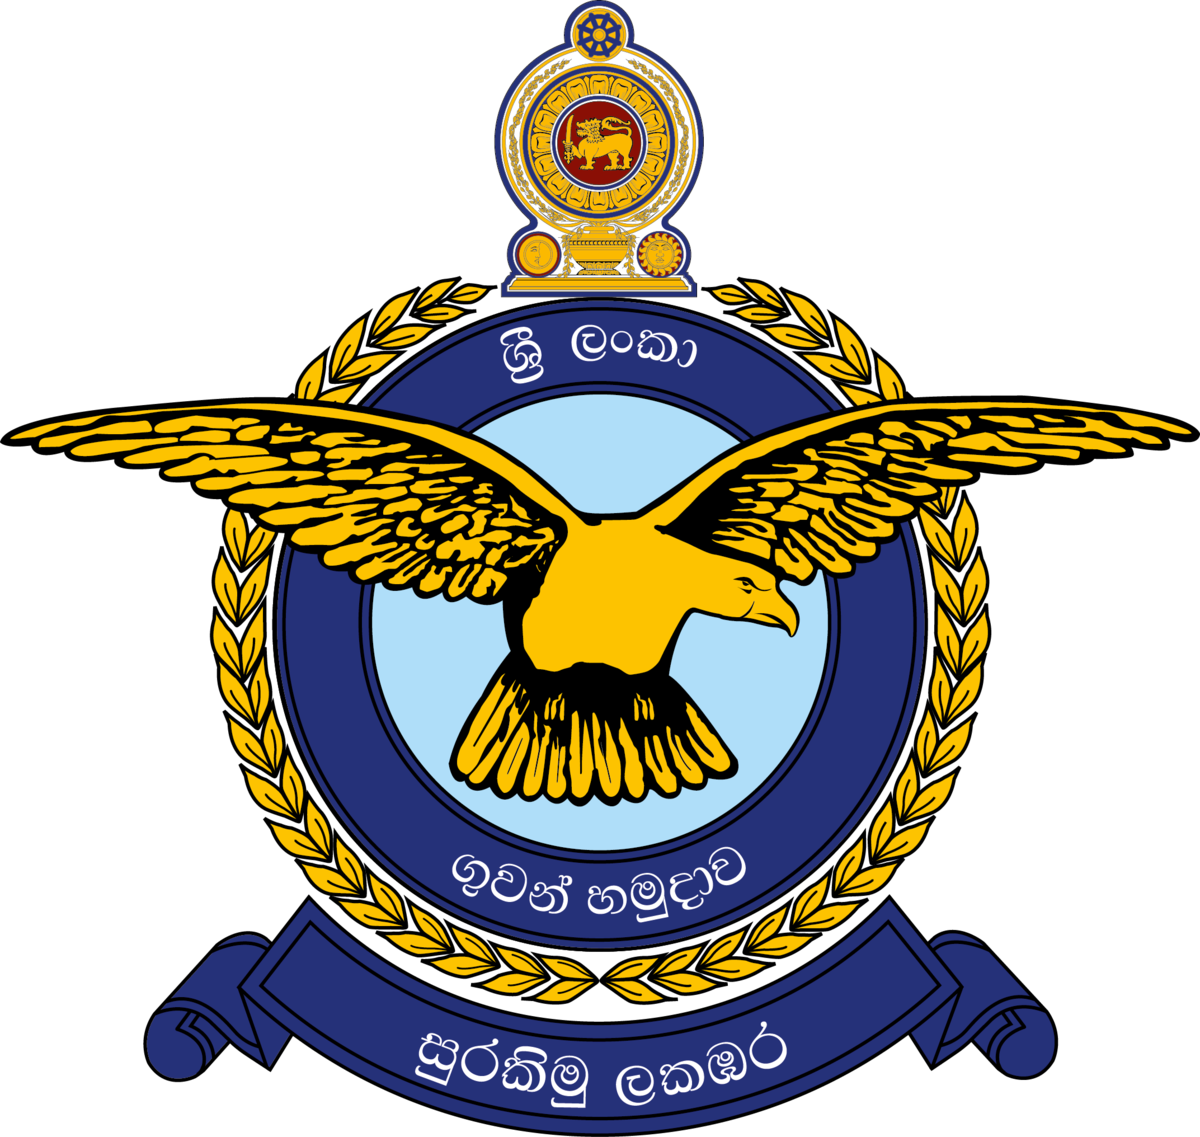 Pilot clipart security guard logo. Sri lanka air force